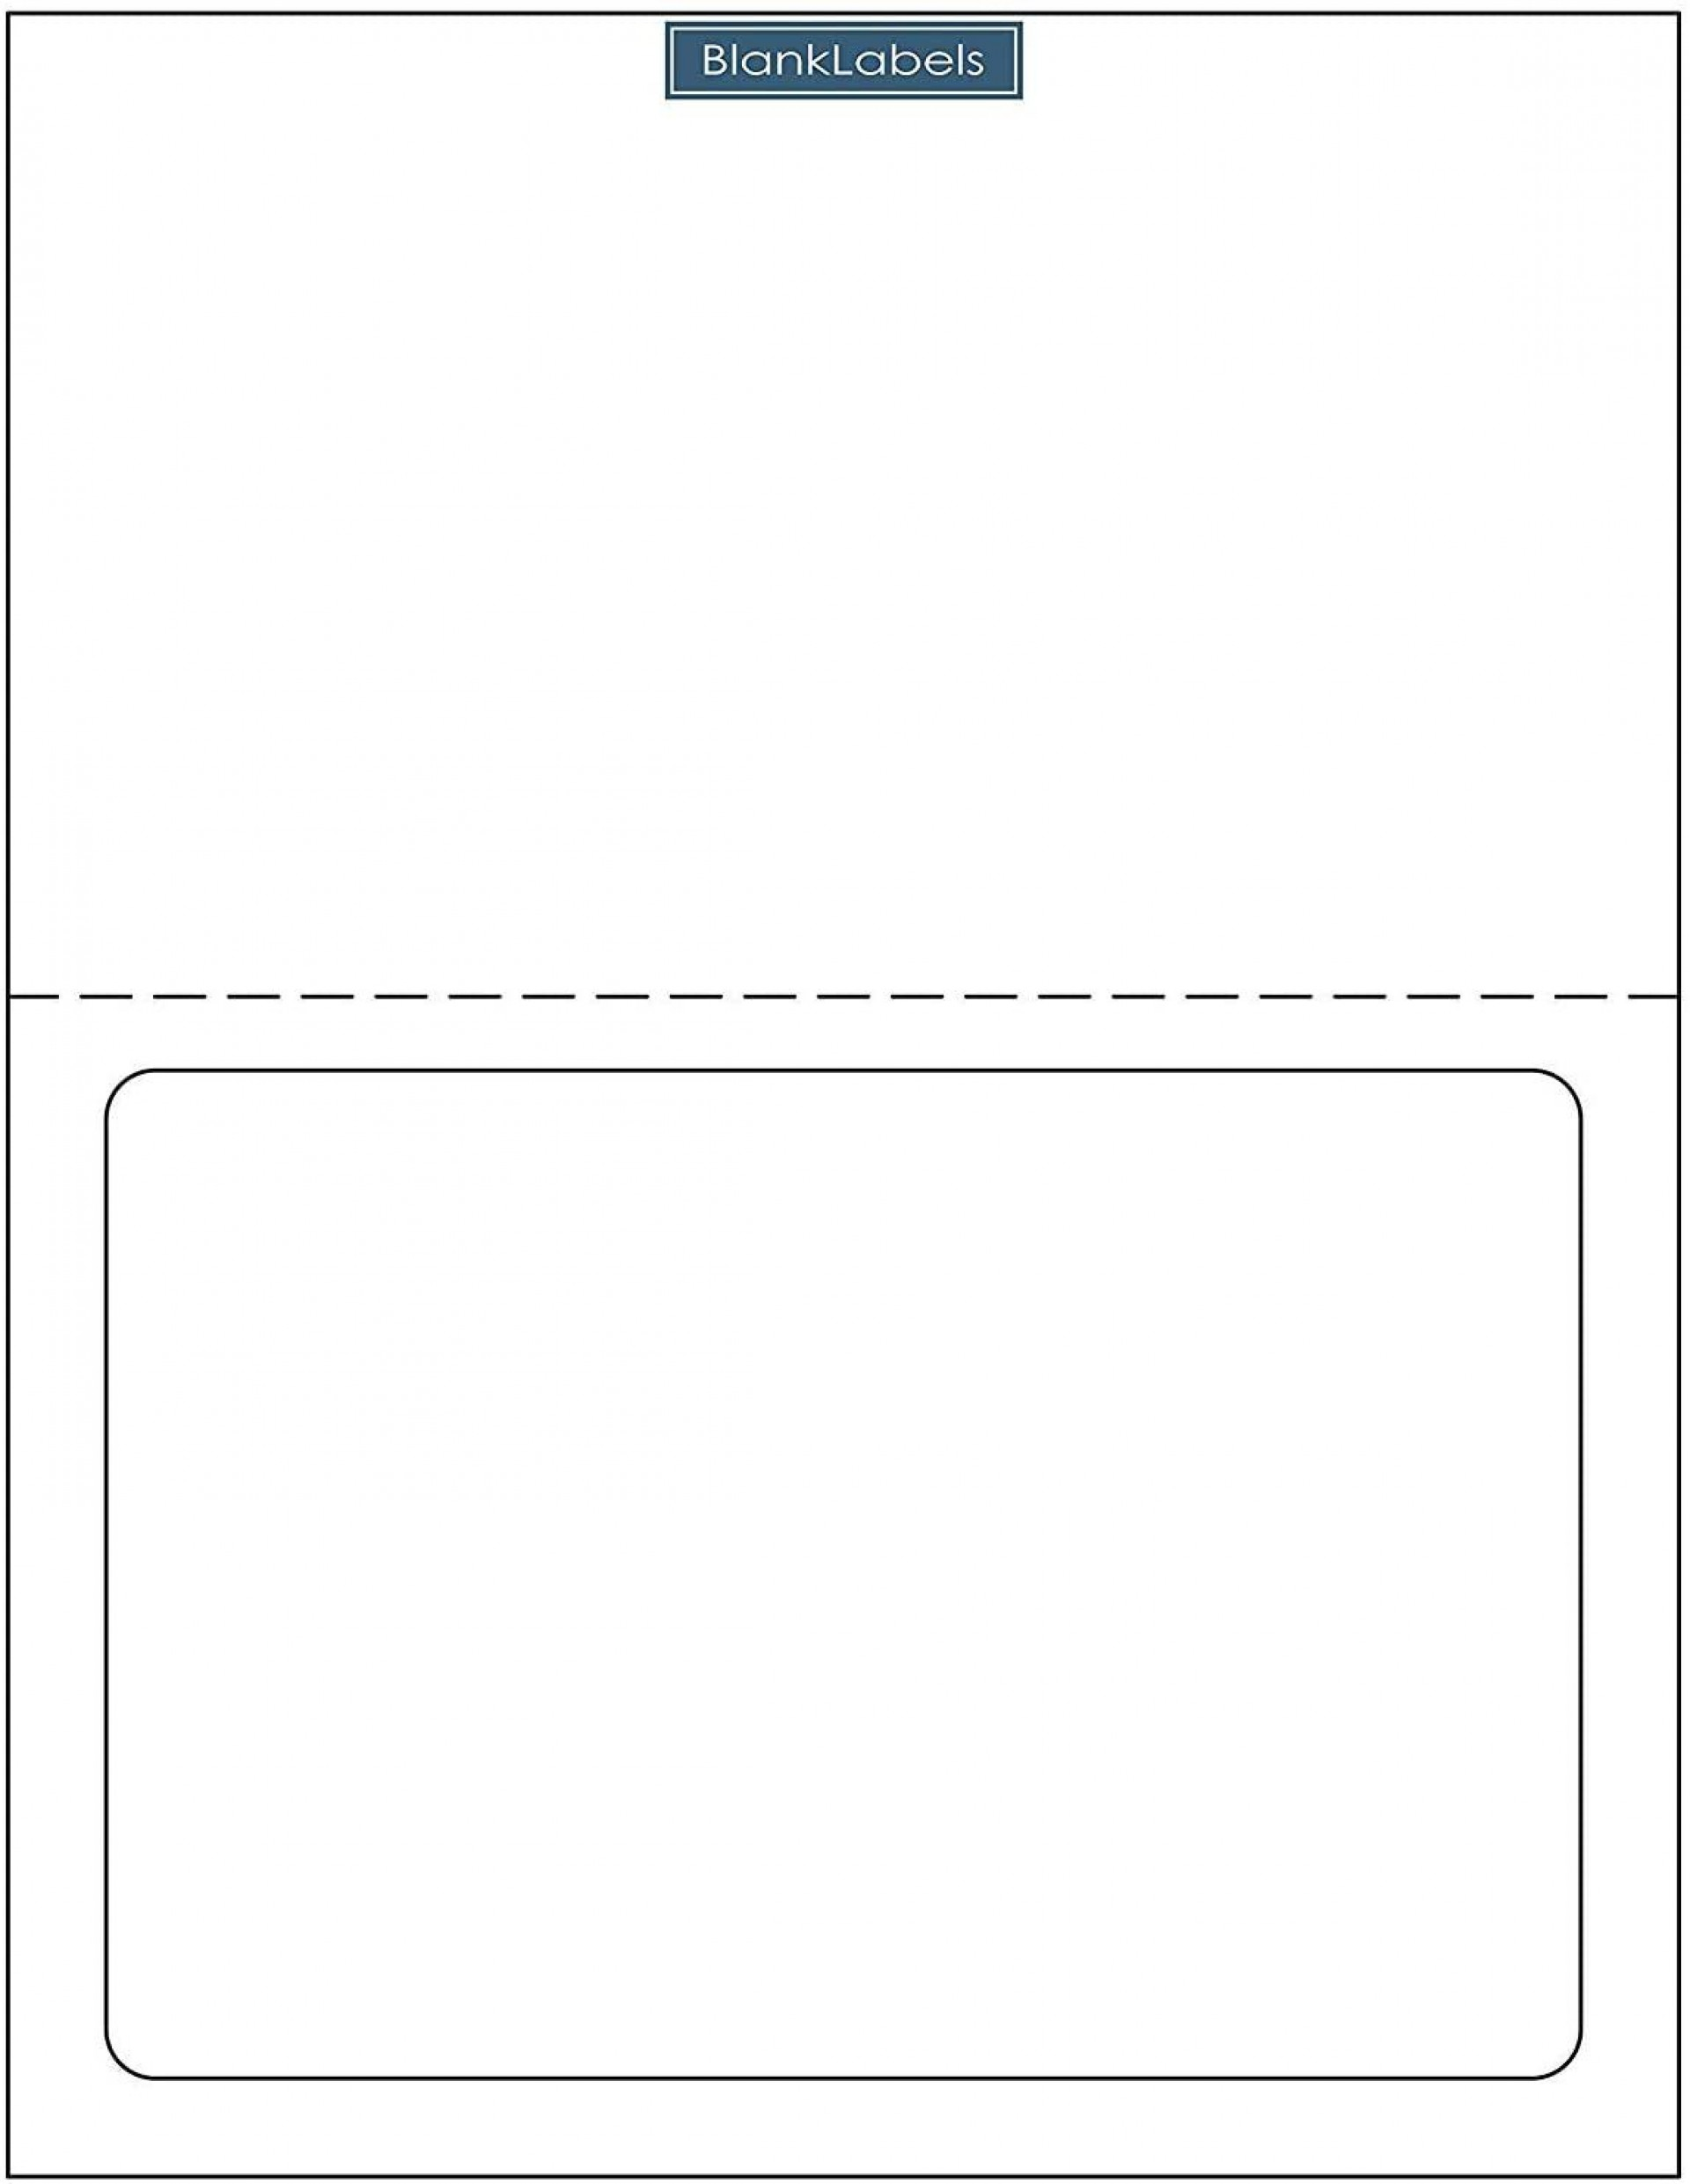 004 Impressive Blank Shipping Label Template High Def  Word Free Printable1920